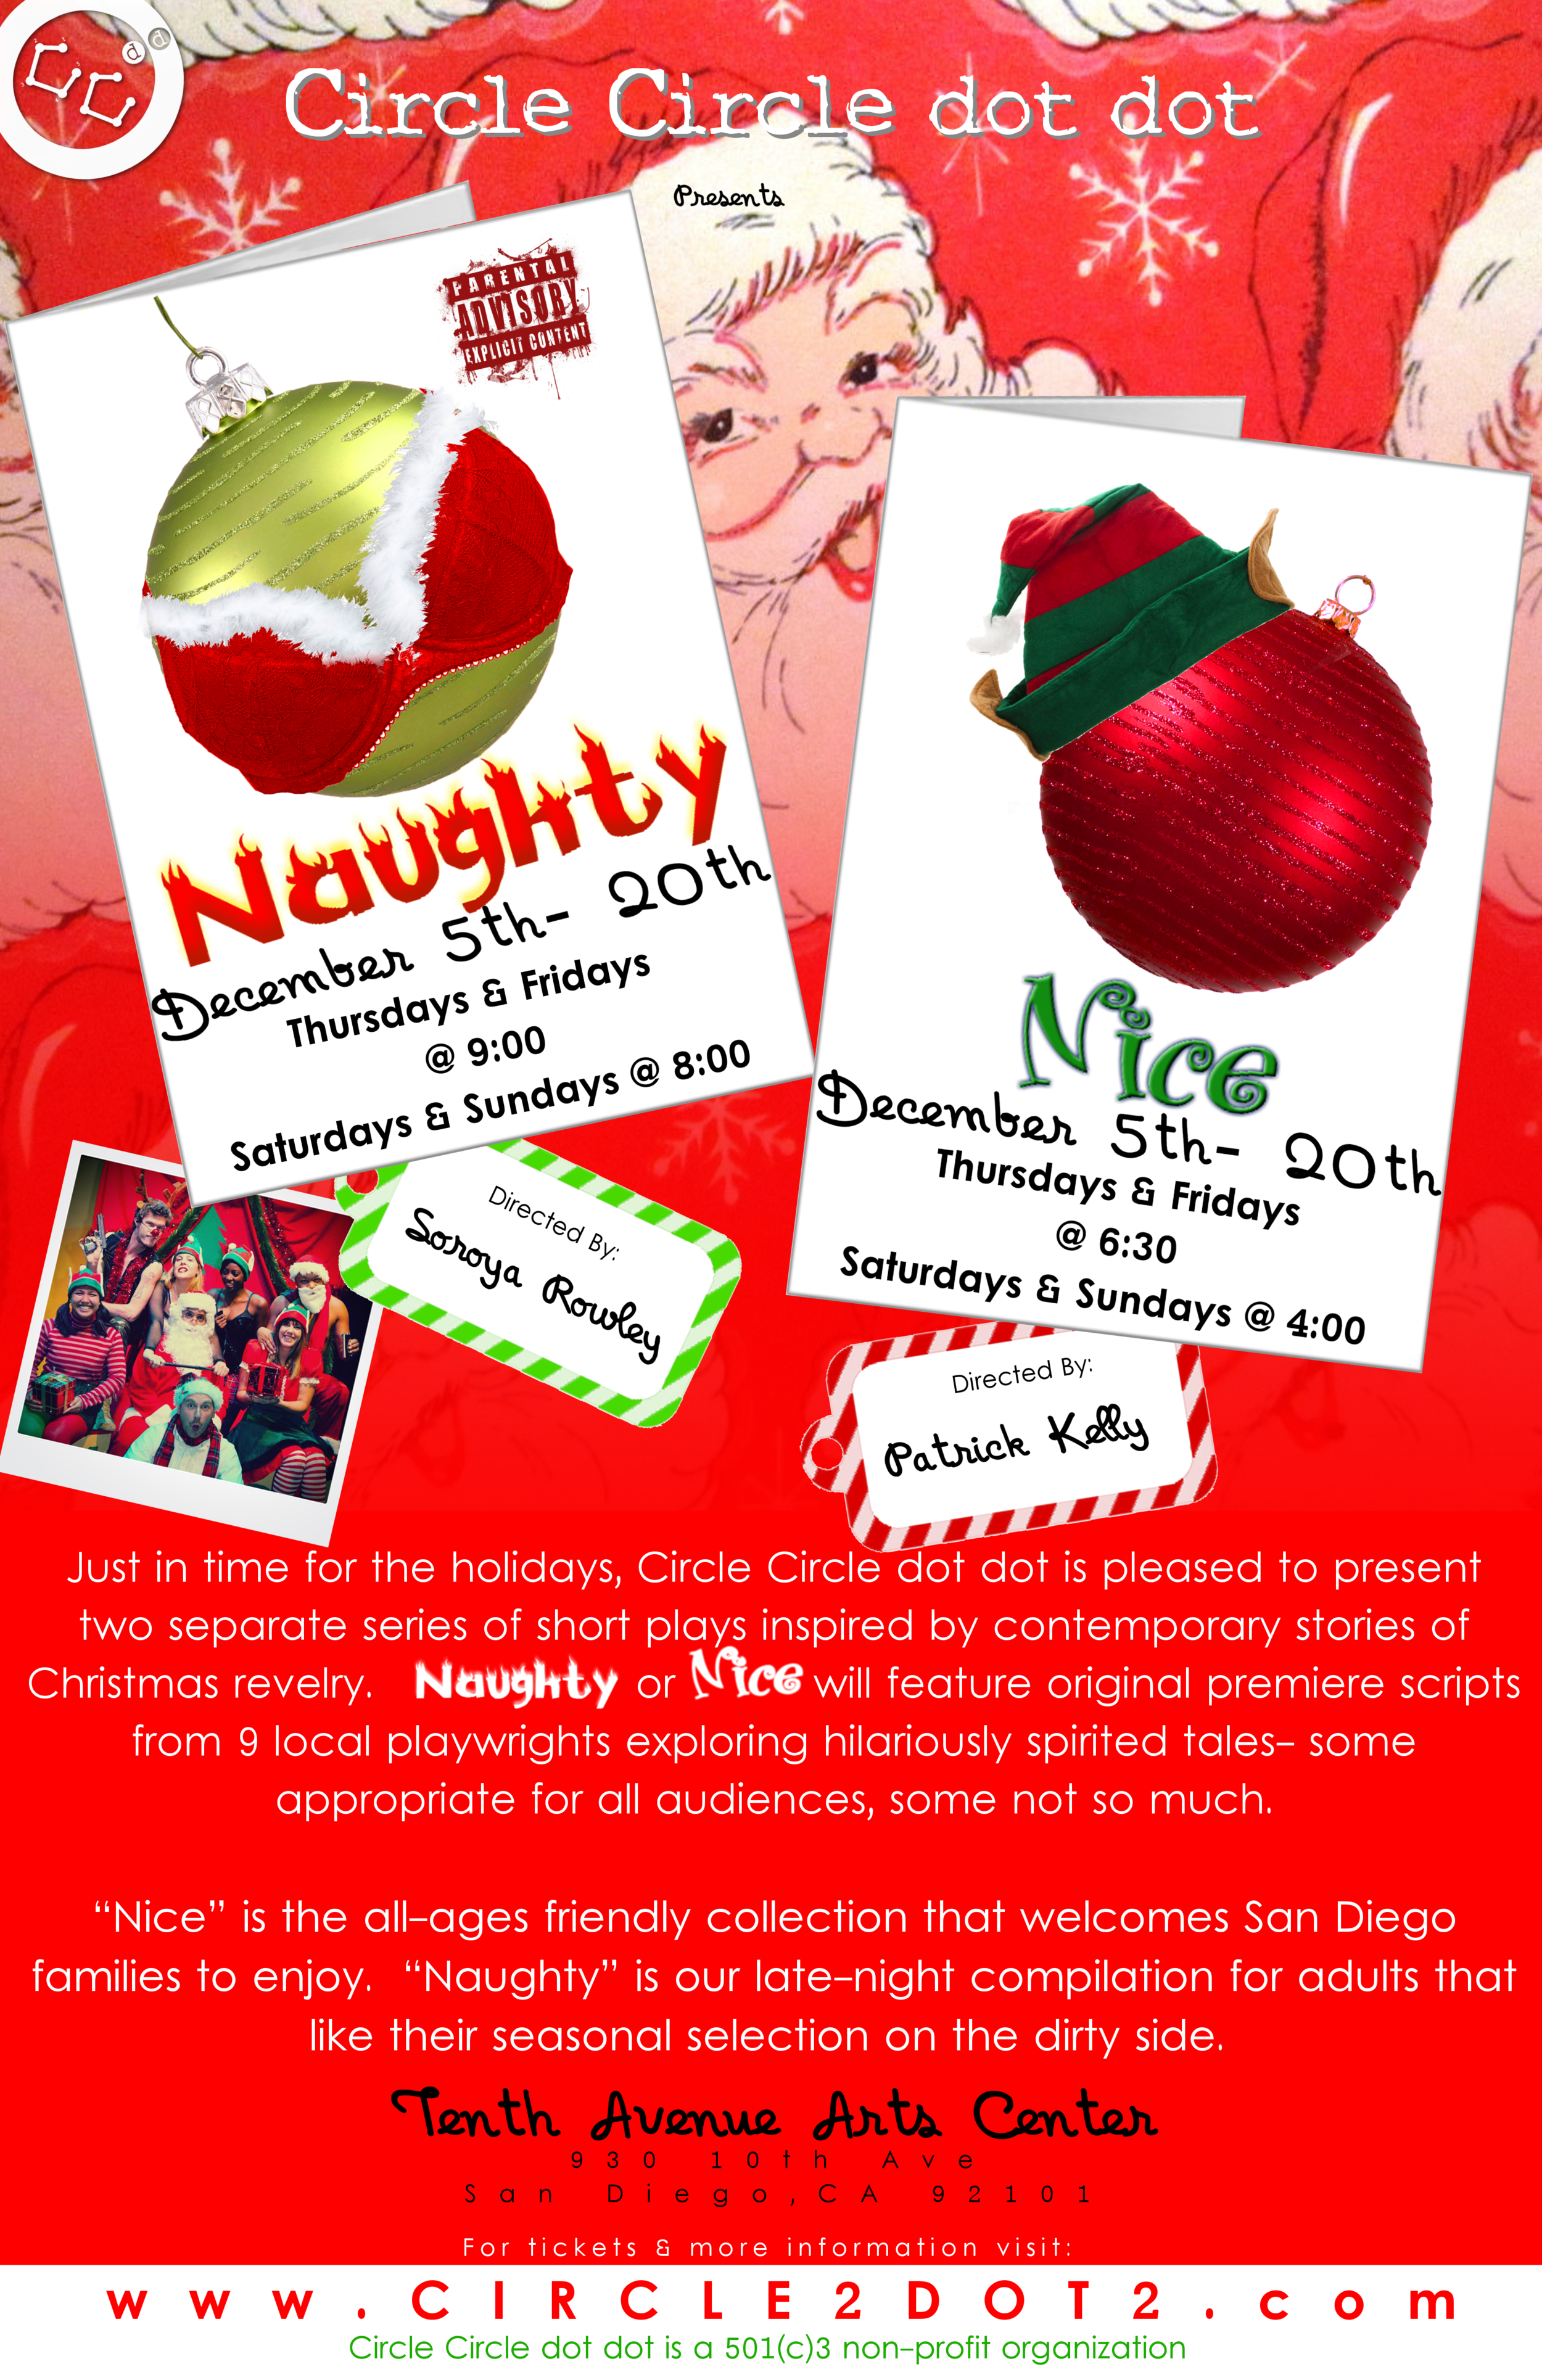 NAUGHTY or NICE *Extra Holiday Special Event